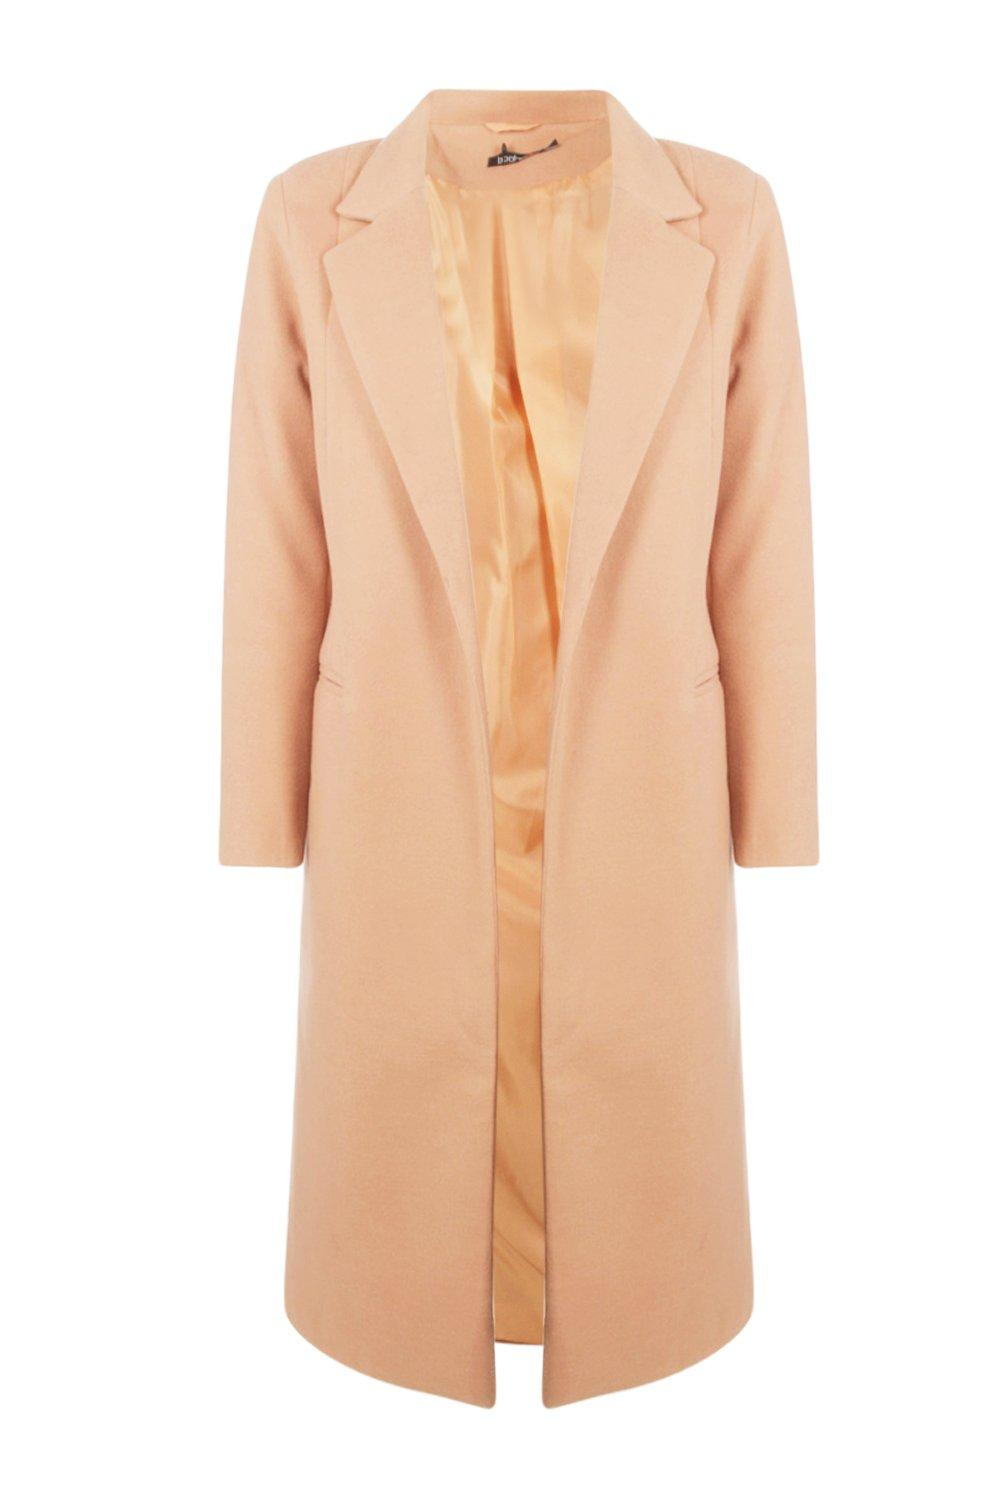 1920s Coats, Furs, Jackets and Capes History Womens Tailored Coat - Beige - M $32.00 AT vintagedancer.com